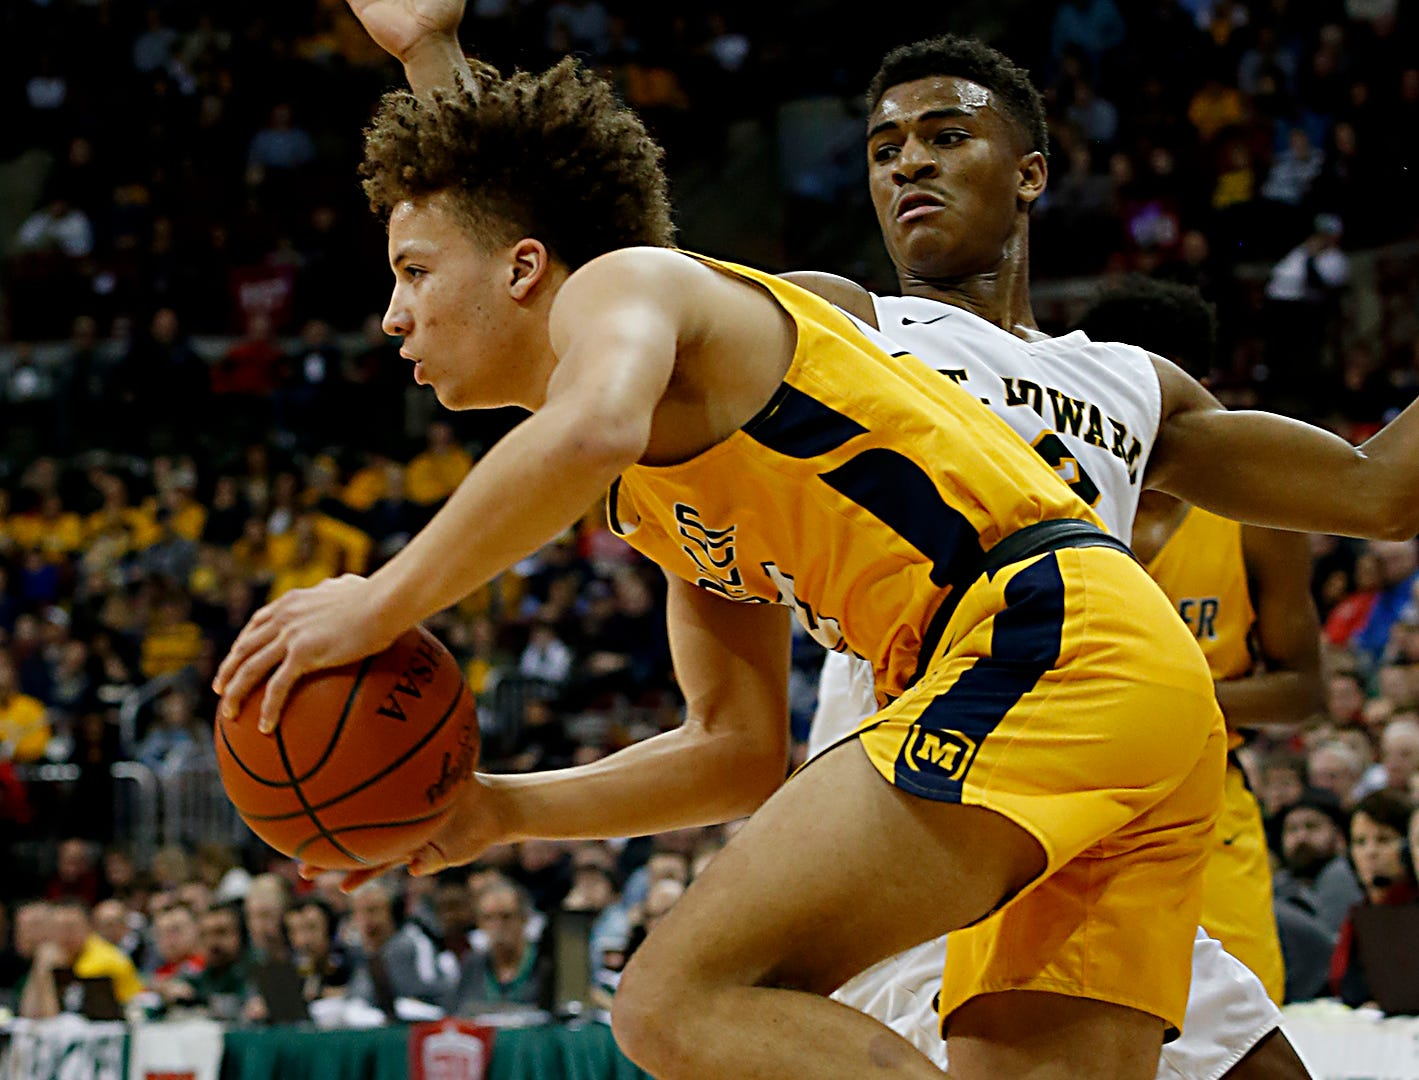 Moeller forward Max Land escapes St. Edward guard Montorie Foster during their Division I semifinal at the Schottenstein Center in Columbus Friday, March 22, 2019.